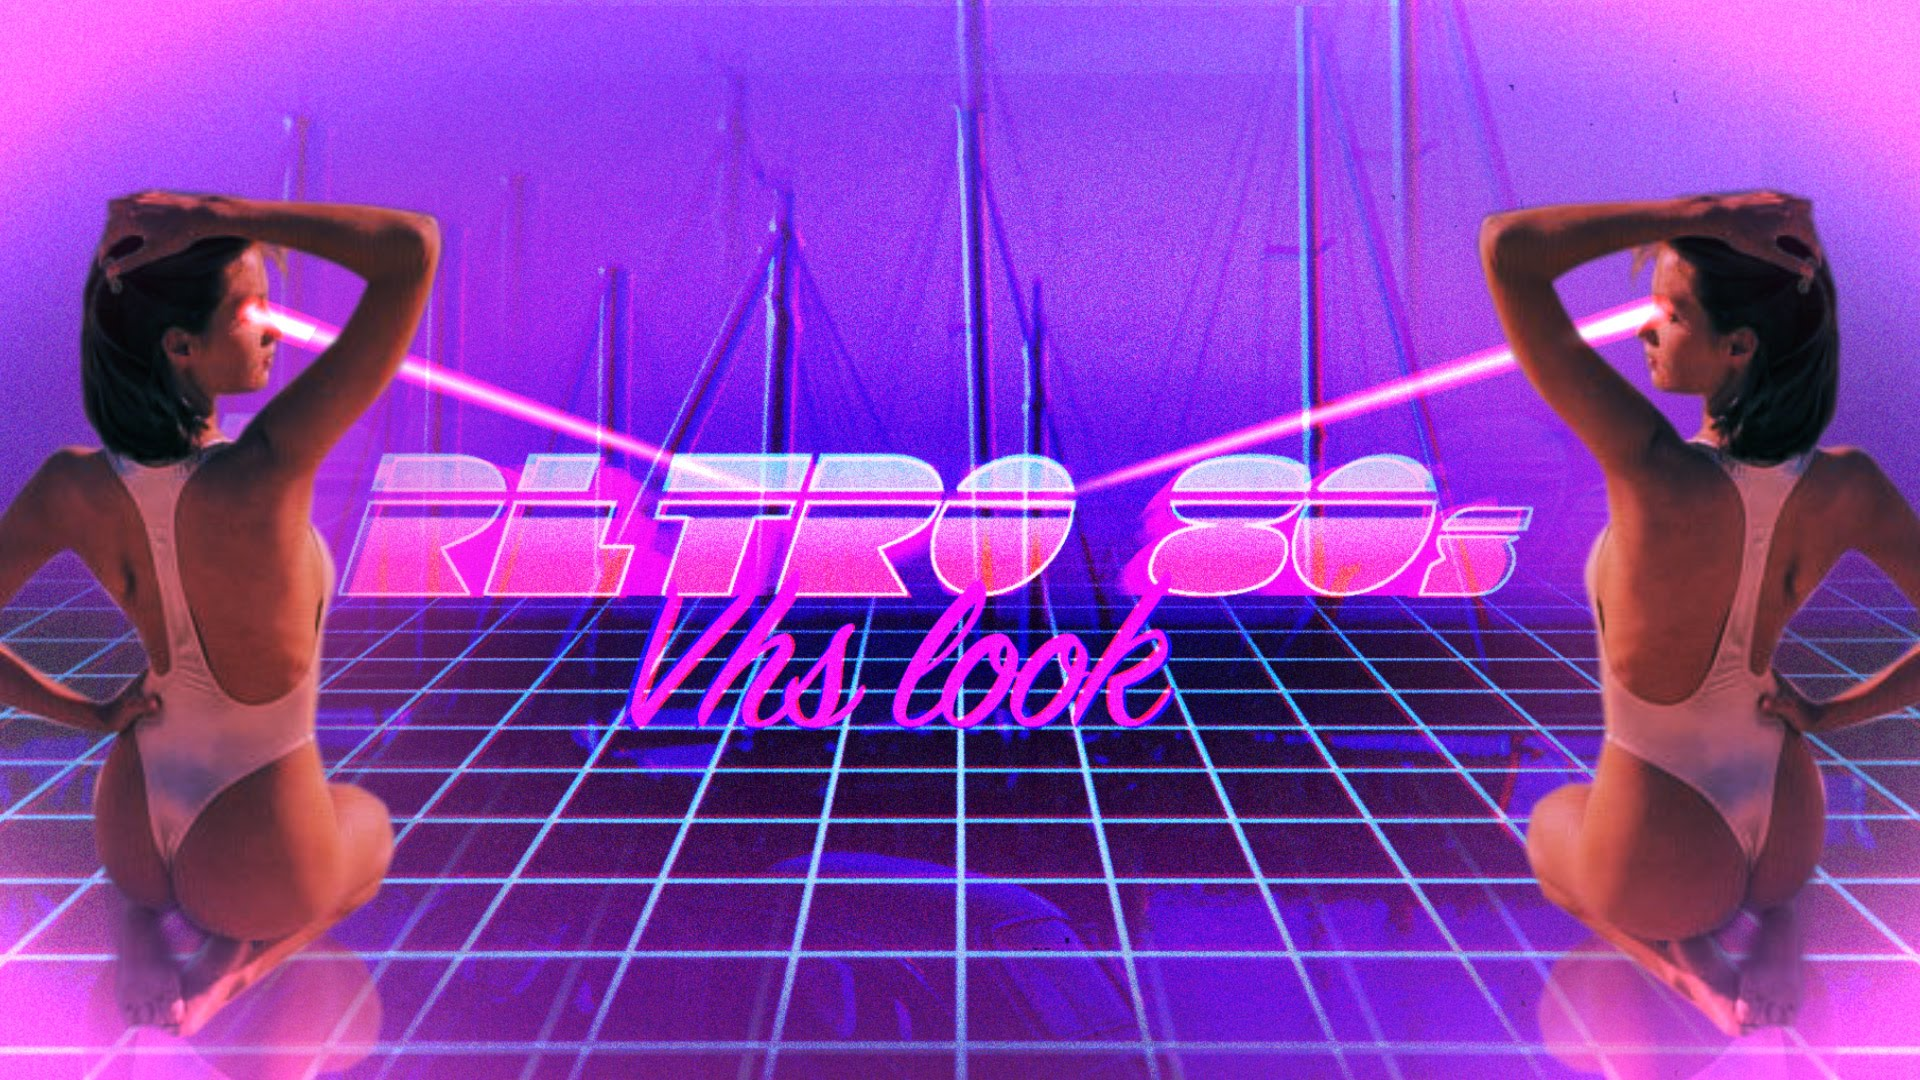 Retro 80s Intro – After Effects Motion Graphics Tutorial